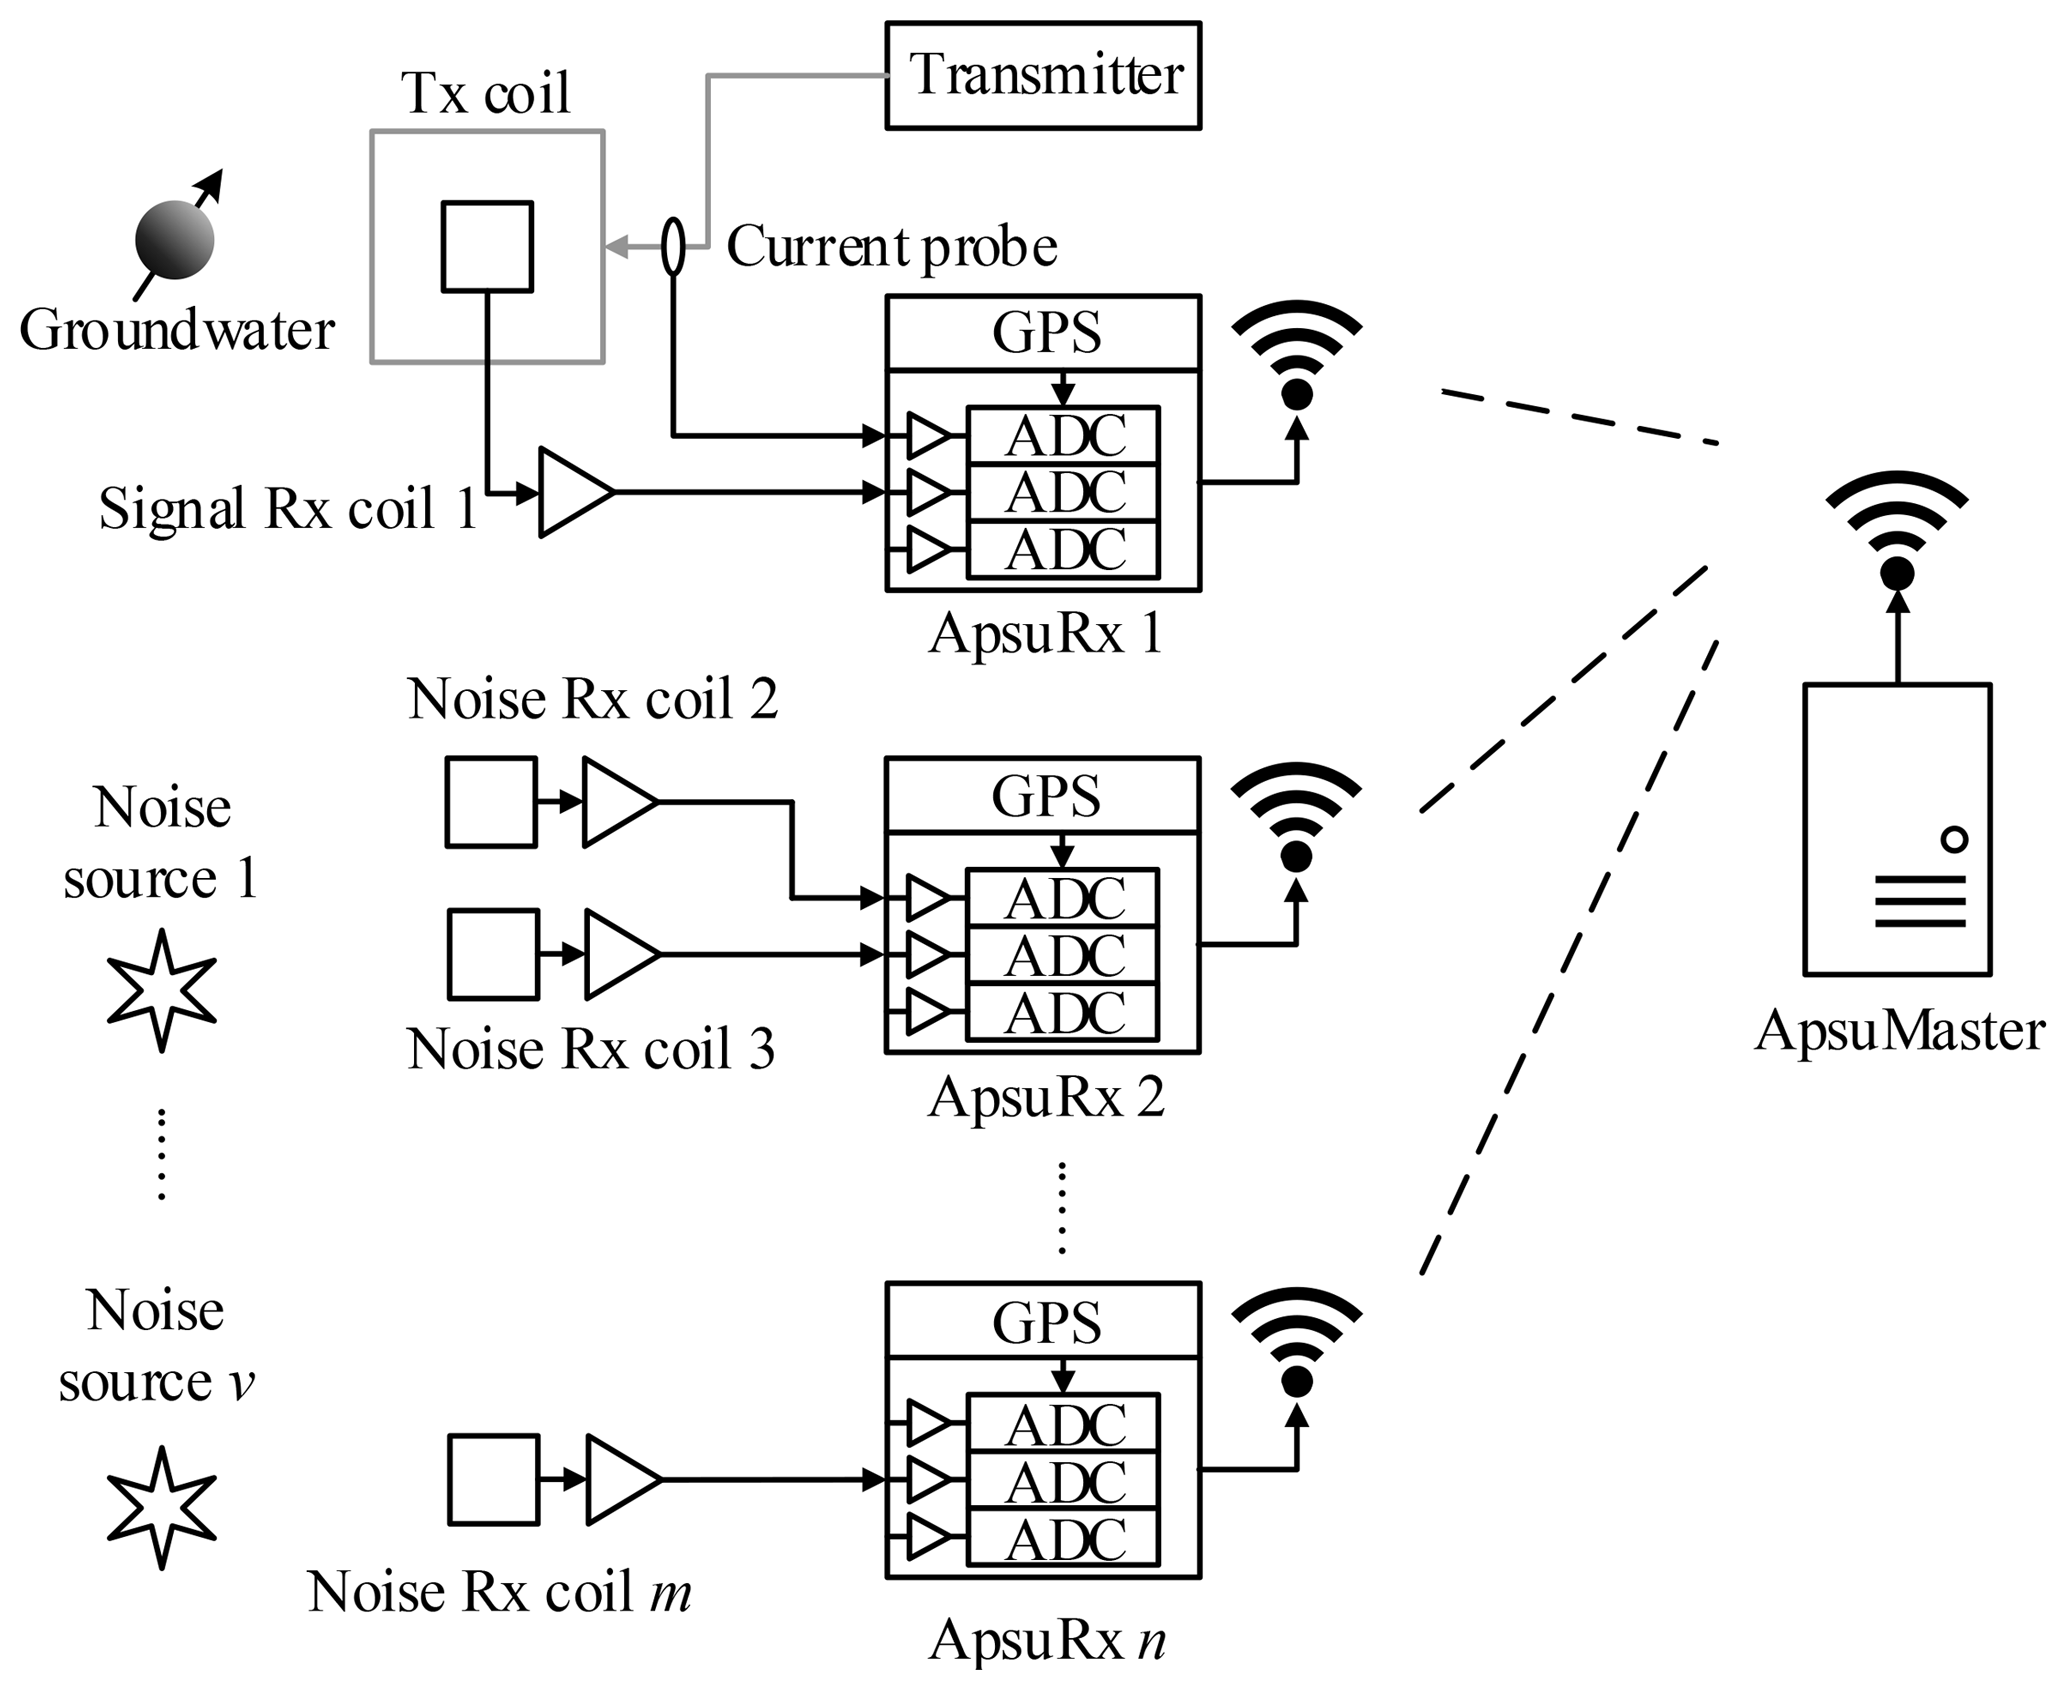 8e492ff0580 GI - Apsu: a wireless multichannel receiver system for surface ...